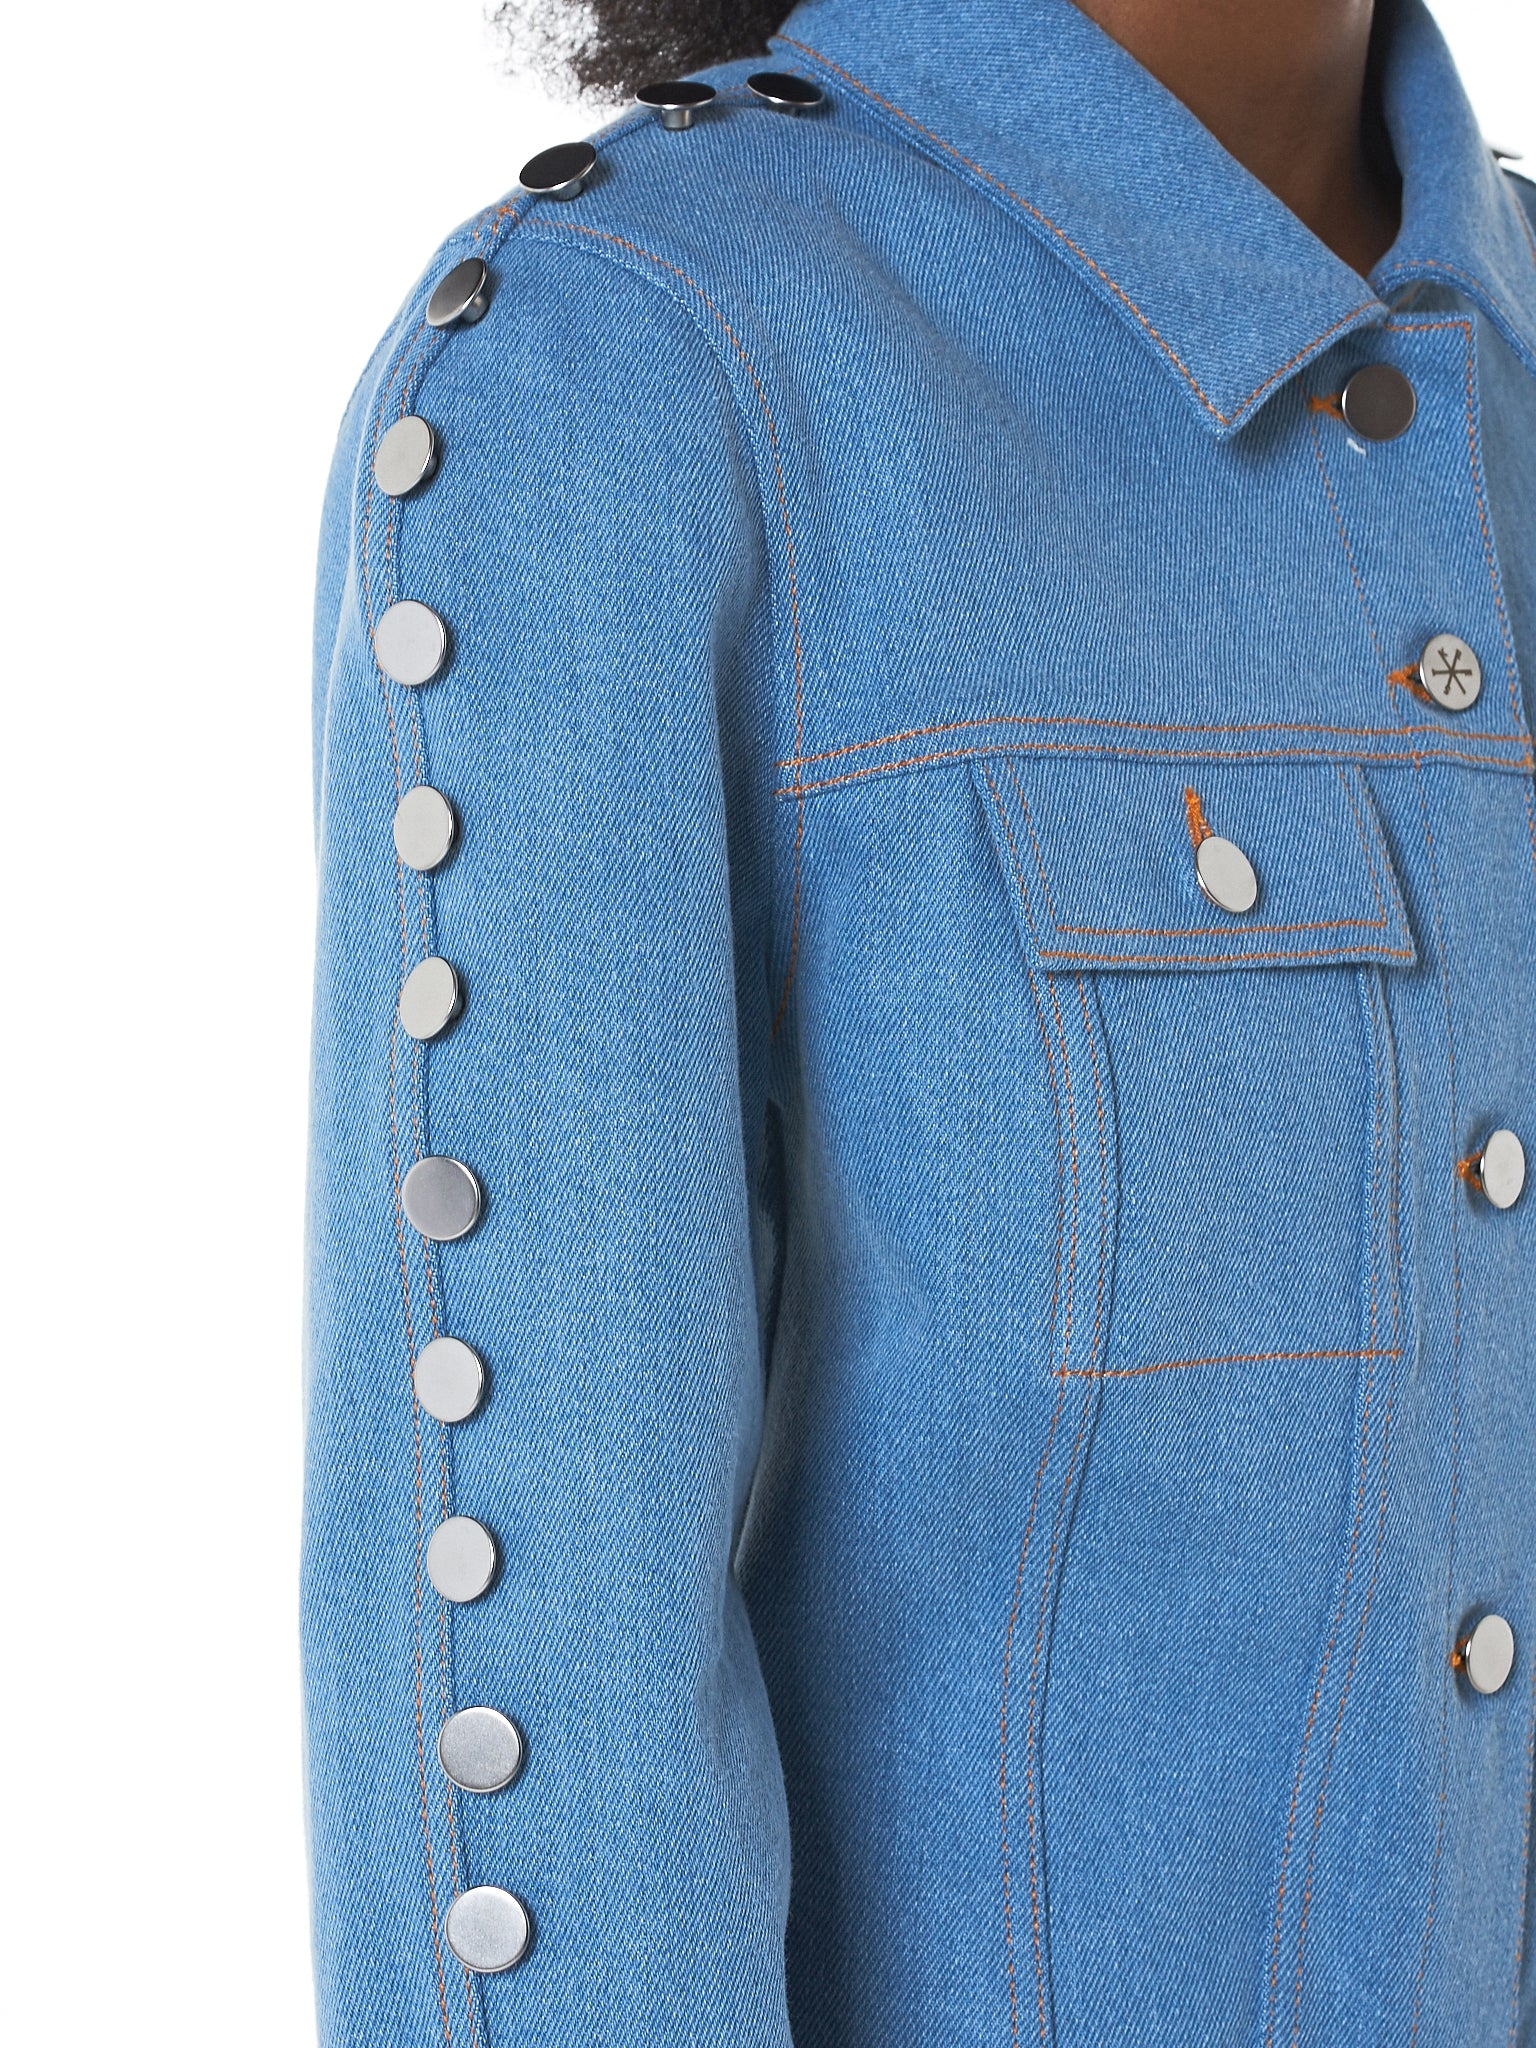 Kreist Denim Jacket - Hlorenzo Detail 1